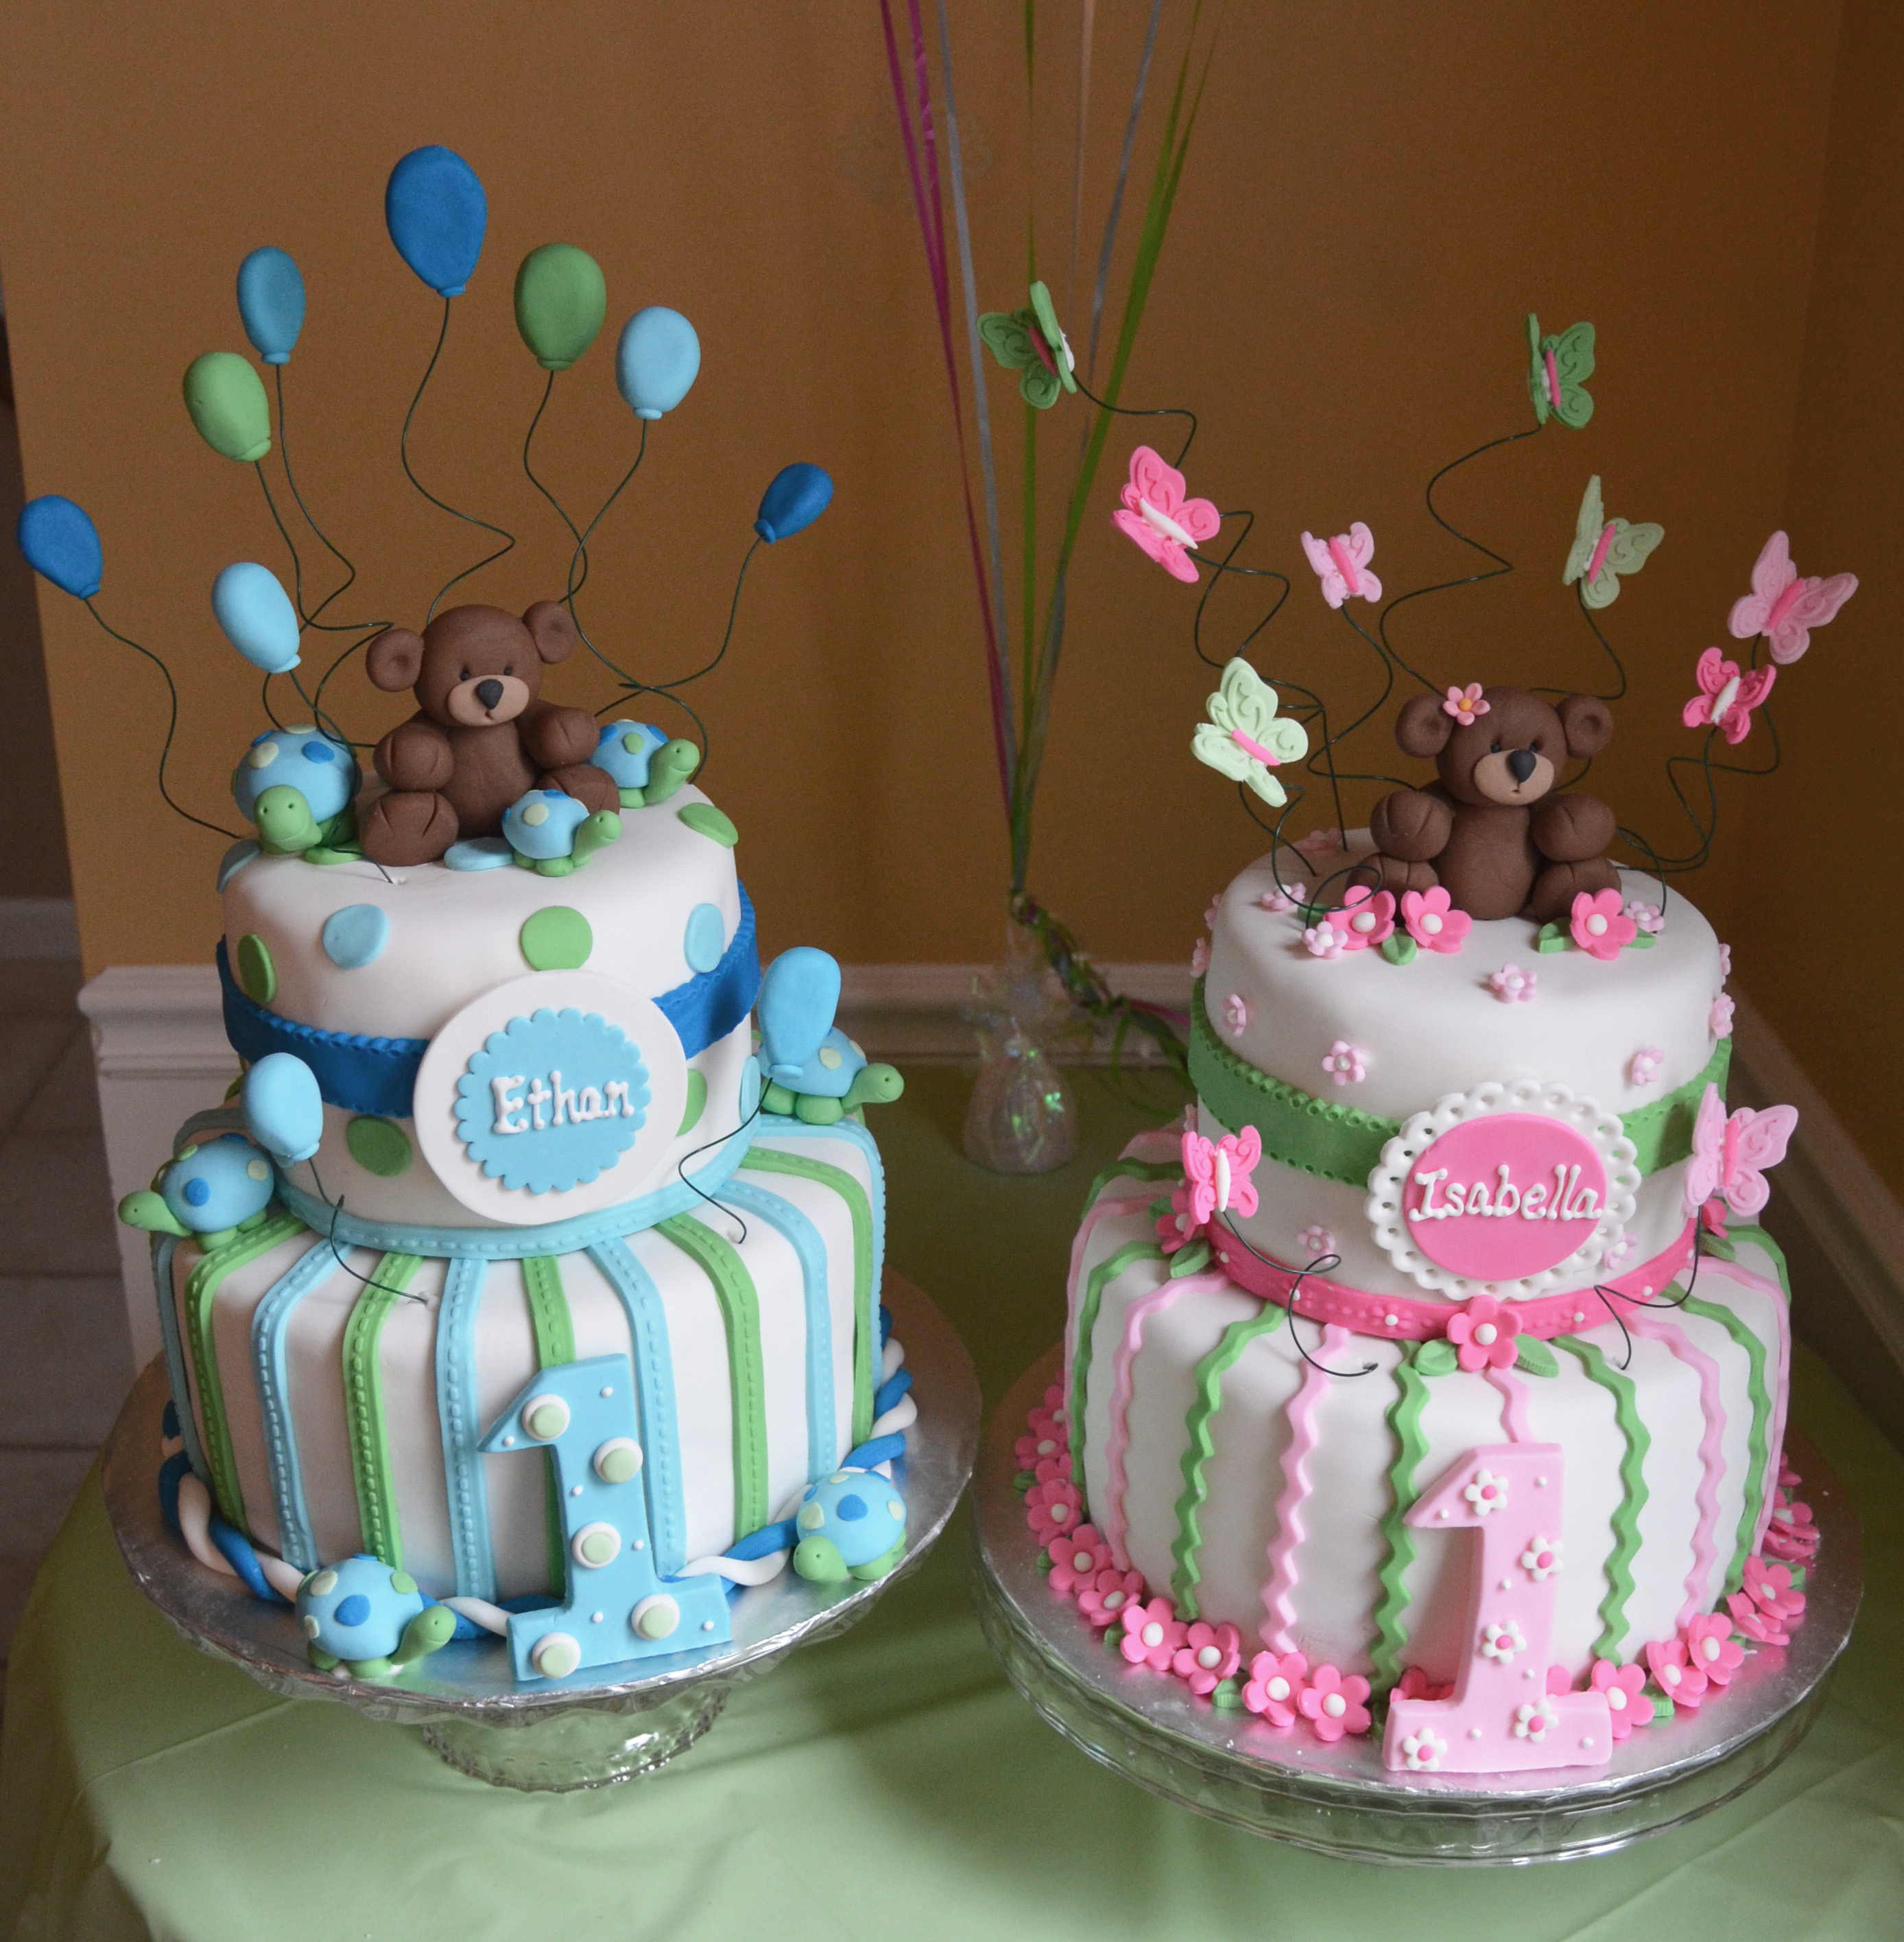 Remarkable Birthday Cake Ideas For Twin Boy And Girl The Cake Boutique Personalised Birthday Cards Paralily Jamesorg